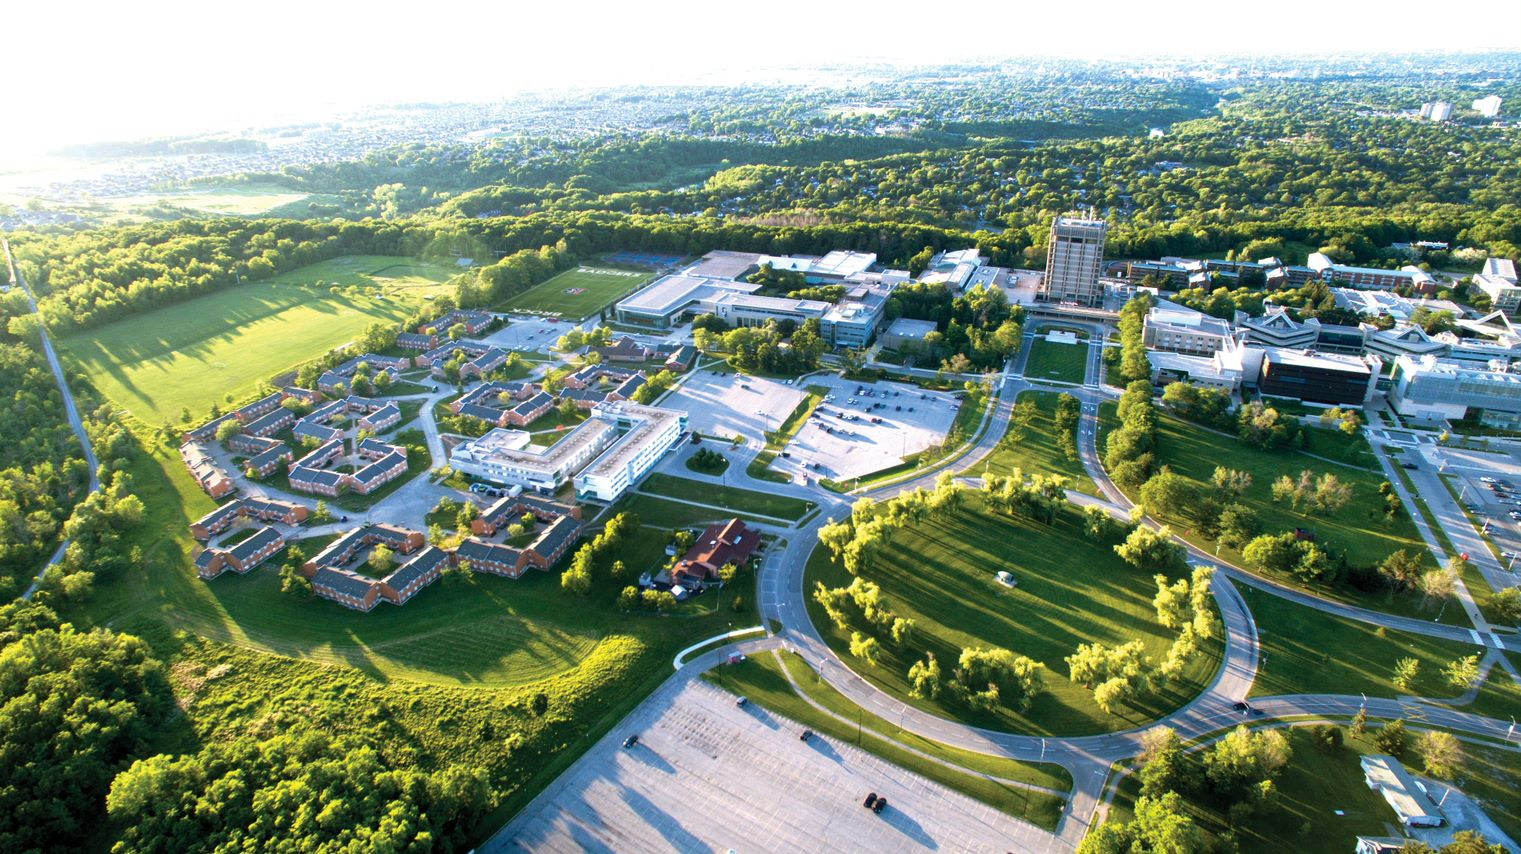 This image is an aerial view of the Brock University St. Catharines campus.